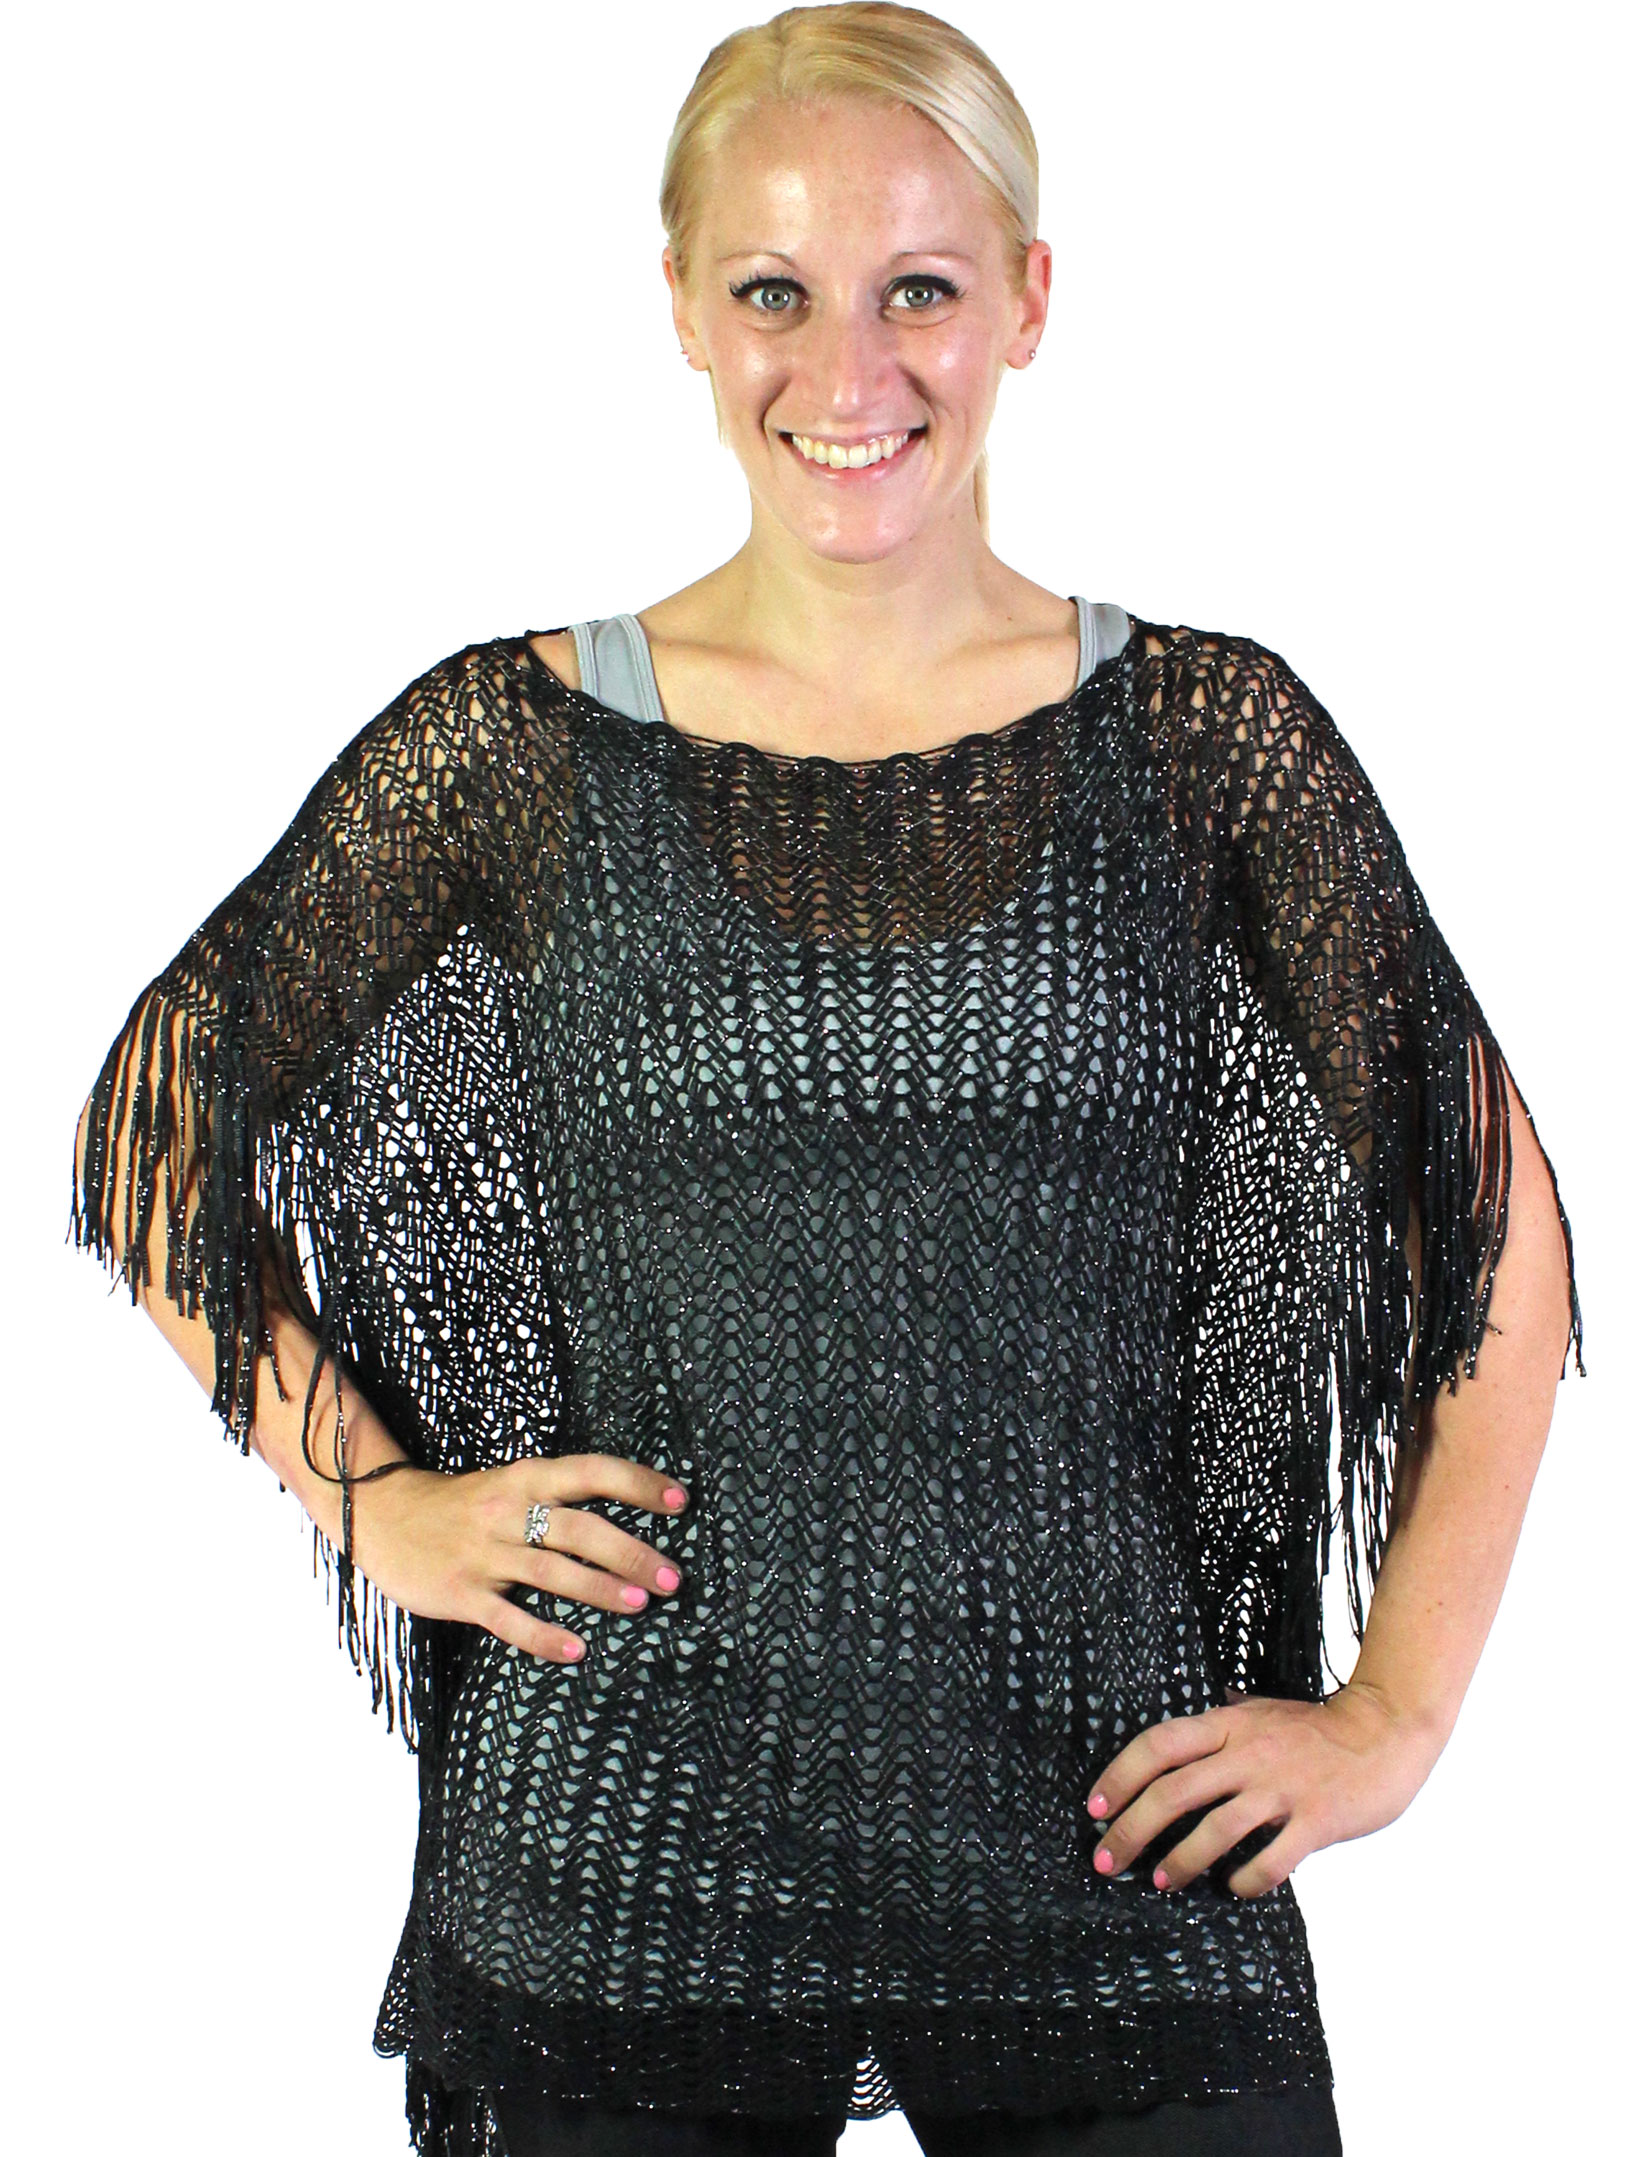 Poncho - Fishnet Metallic 6604 & 6608 - Black (#08)